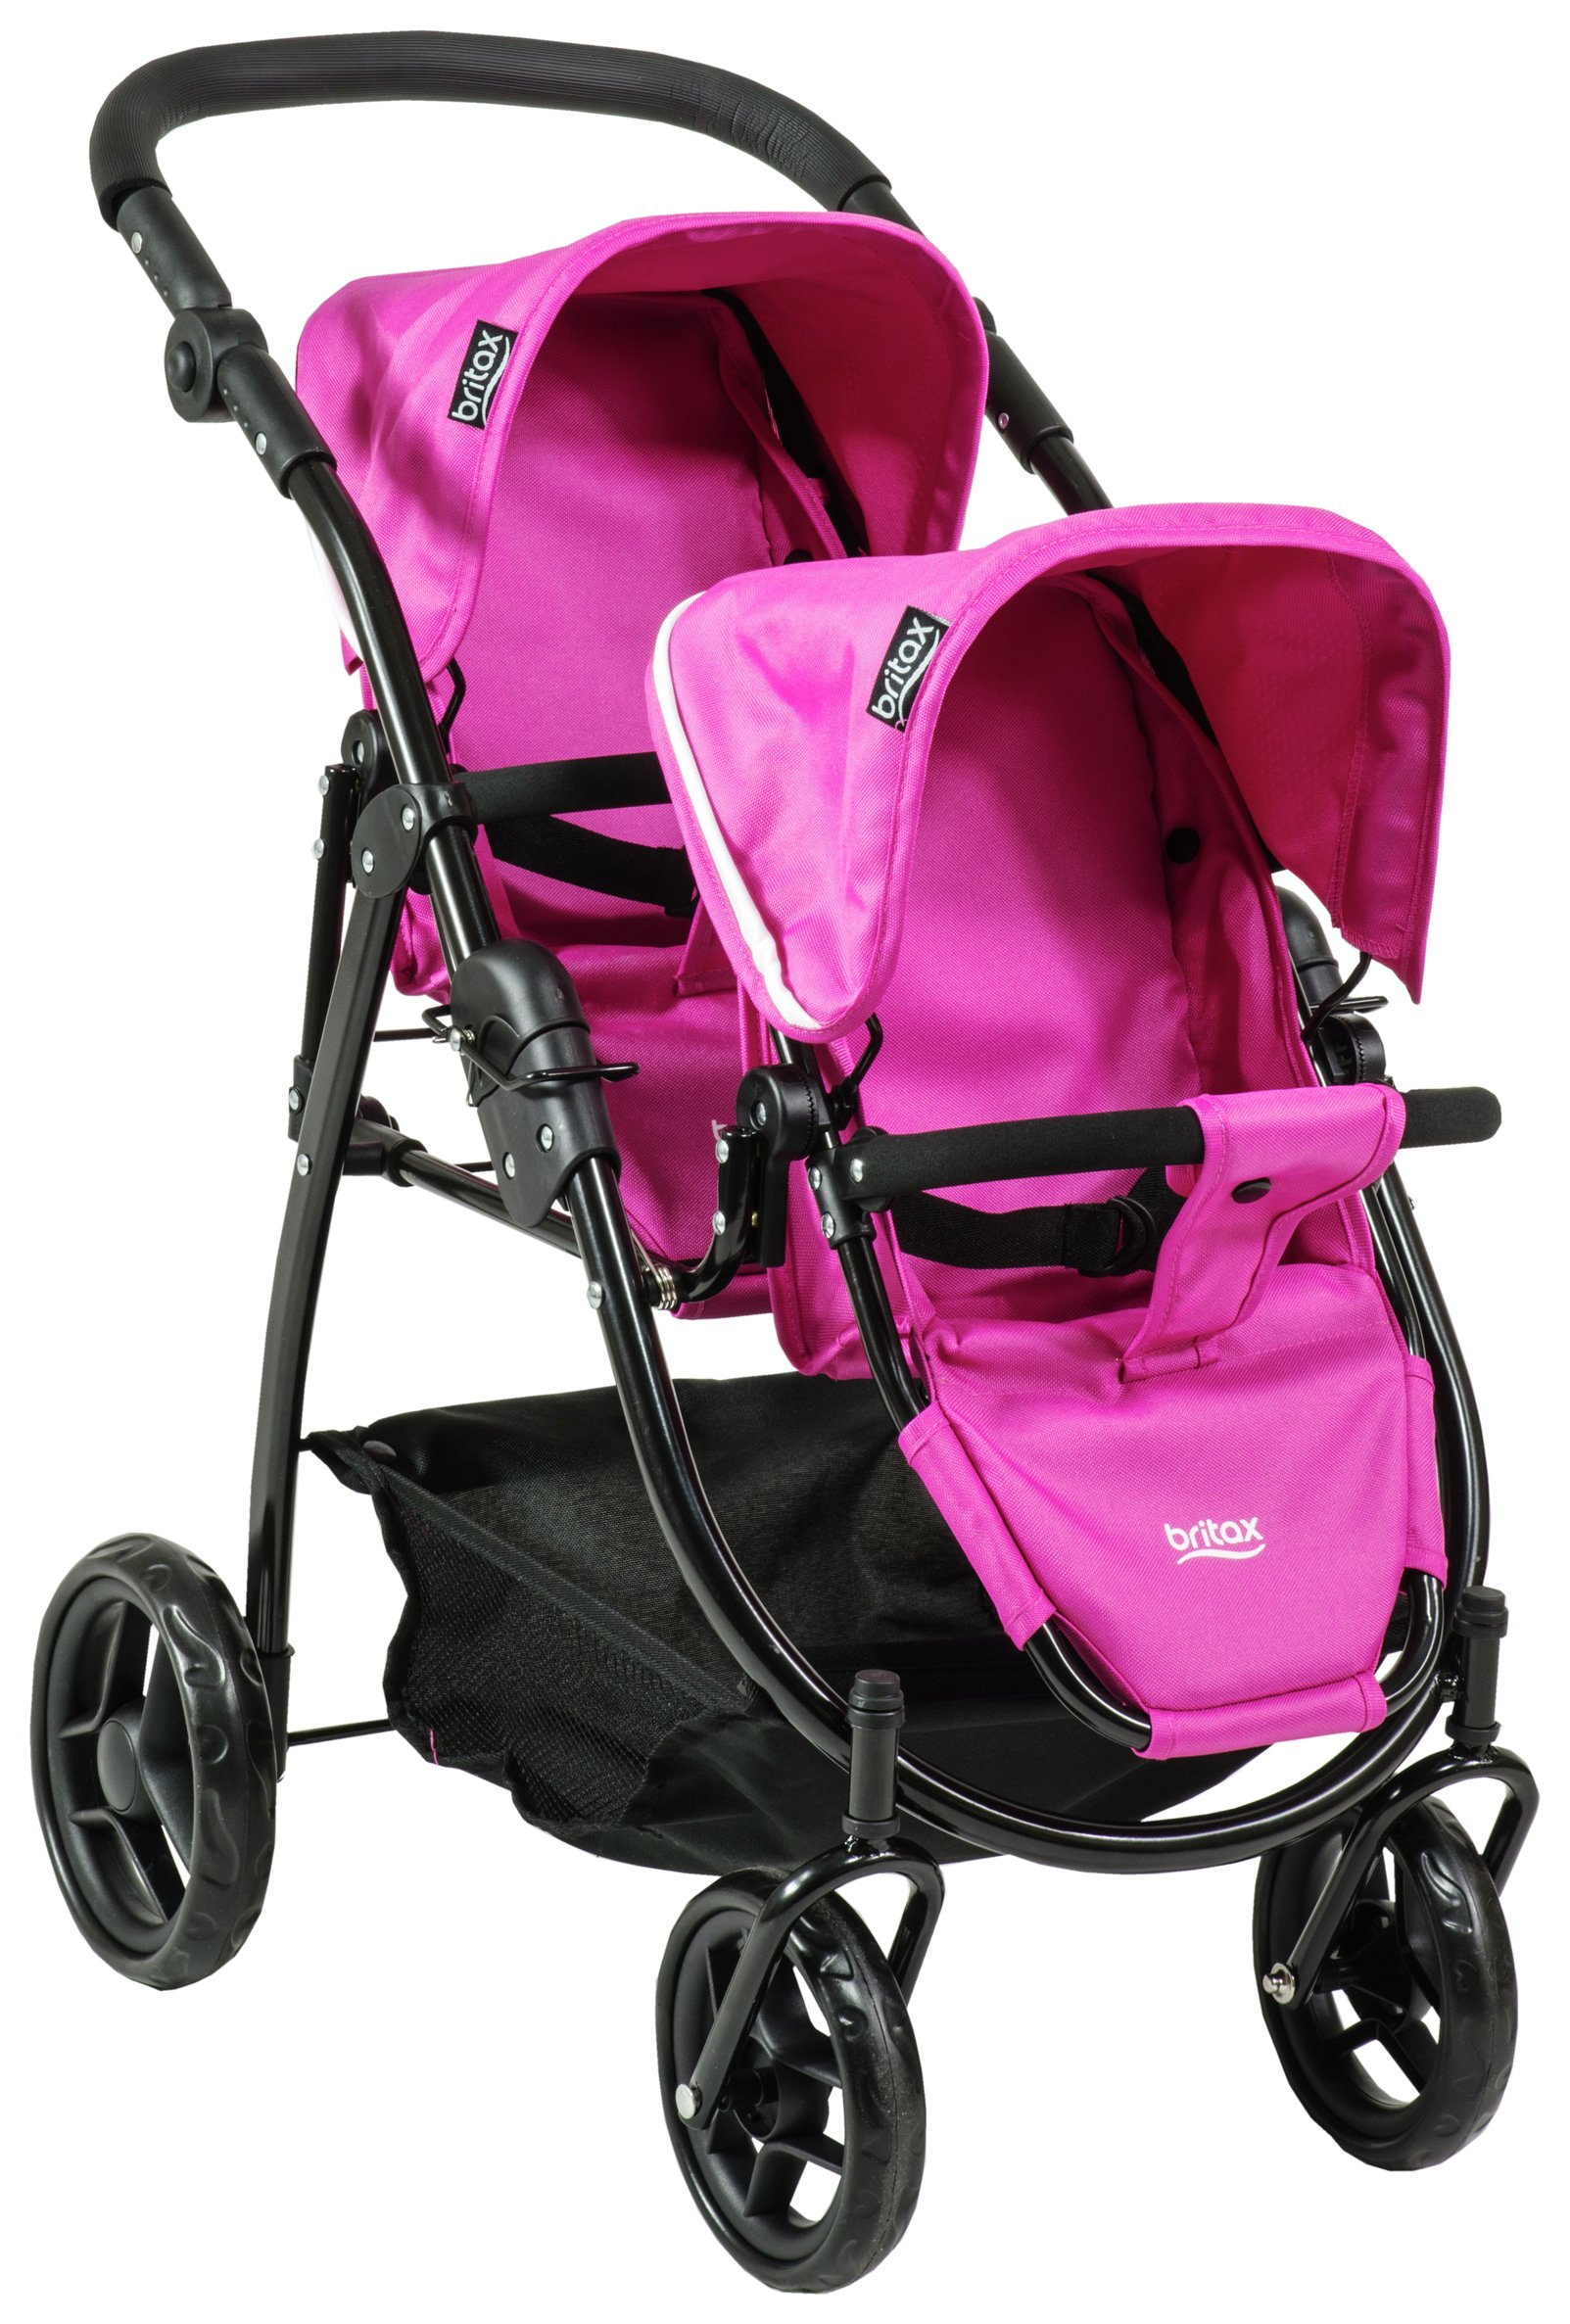 Image of Britax Duo Twin Dolls Stroller - Hot Pink.